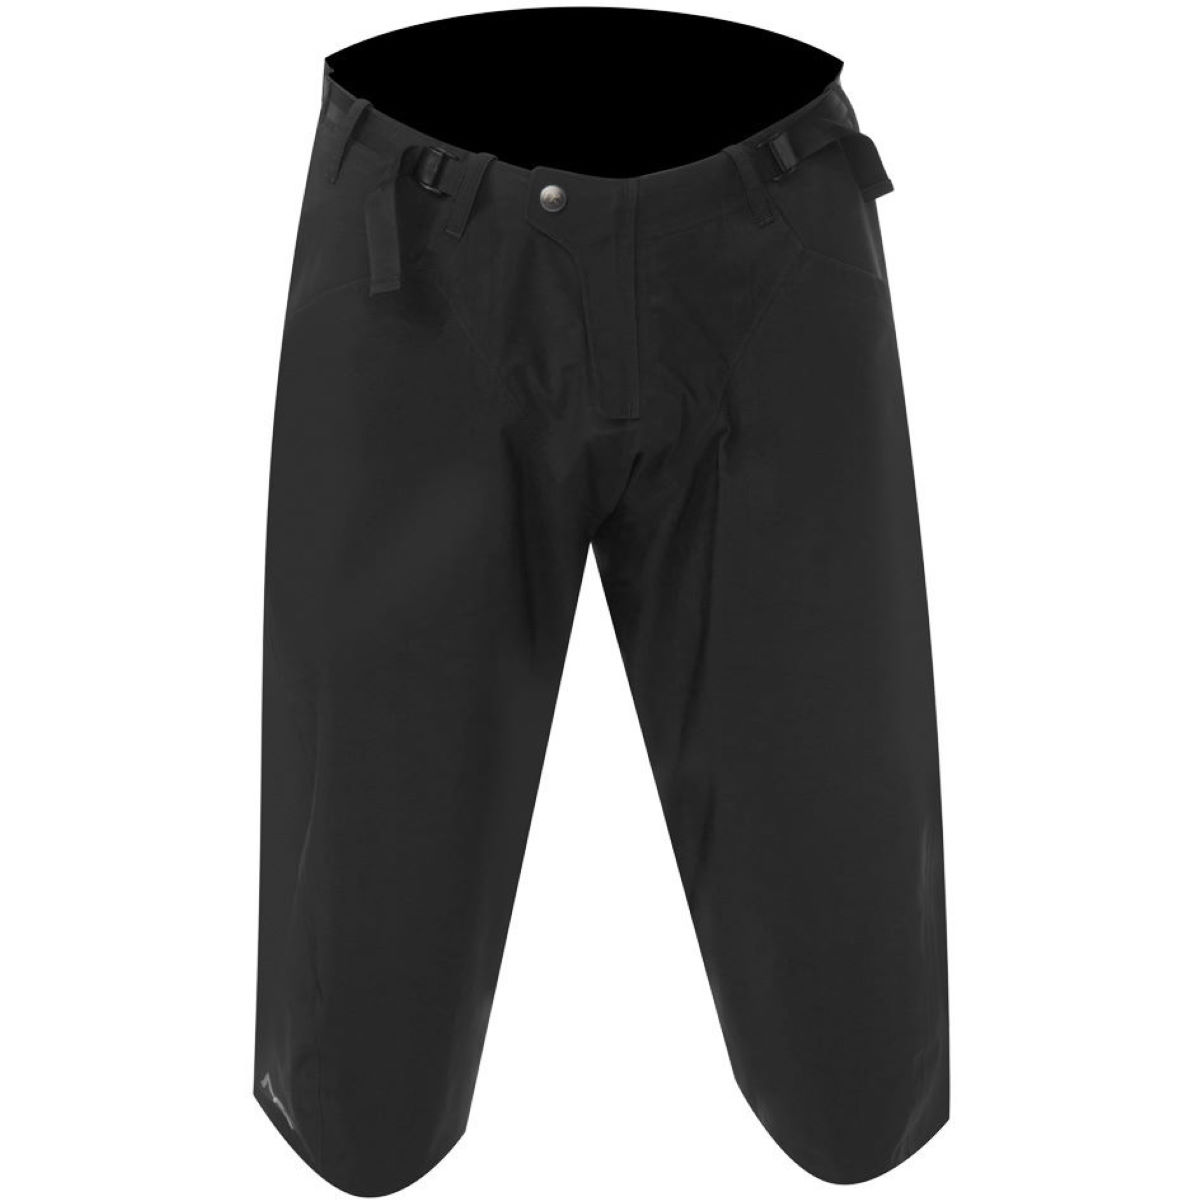 Short 7Mesh Revo - XL Noir Shorts VTT